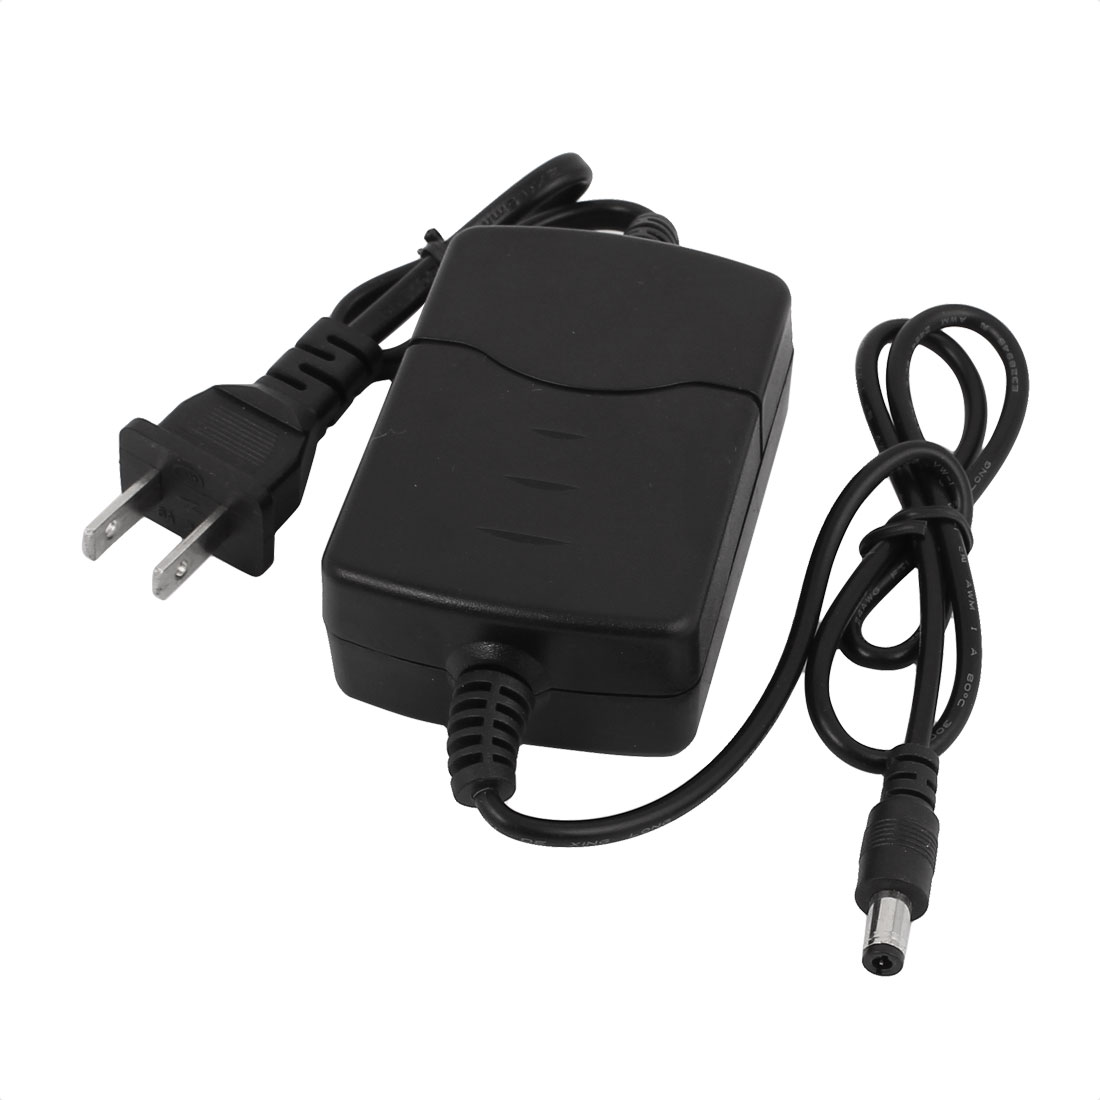 AC 100-240V to DC 5V 1A Power Supply Adapter for LED Strip light CCTV